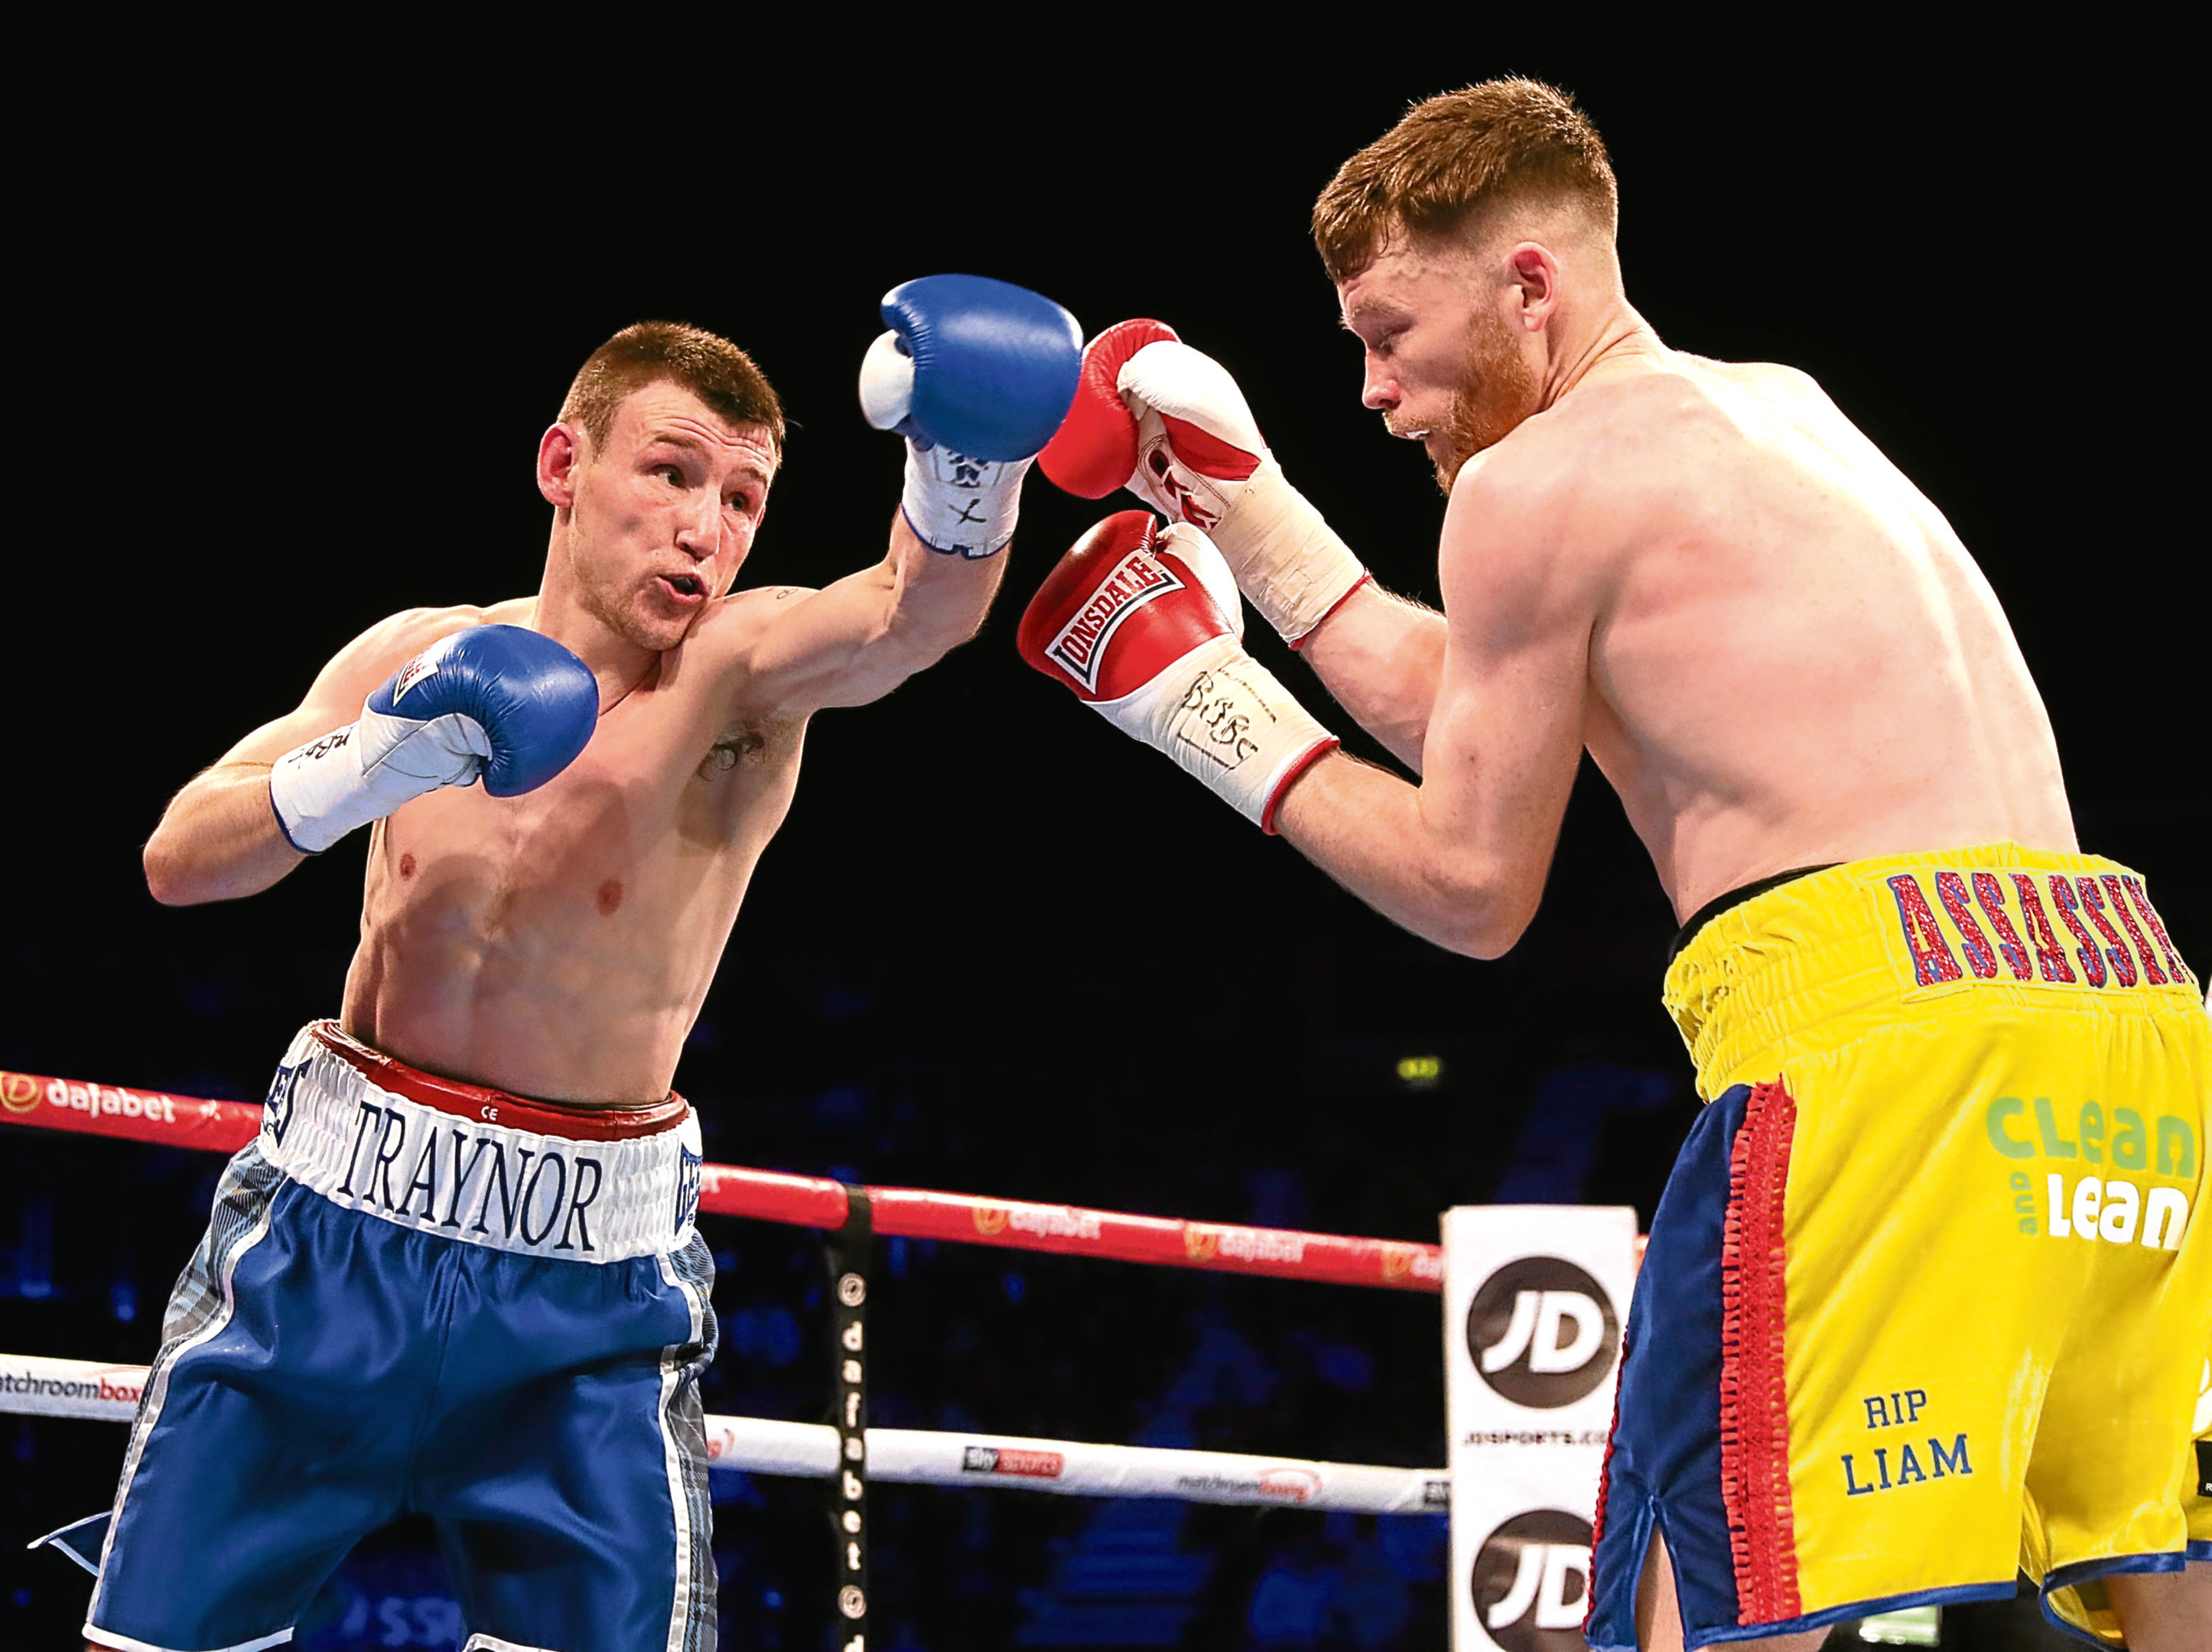 Darren Traynor, left, in action against James Tennyson during their WBA International Super-Featherweight Championship at the SSE Arena, Belfast.